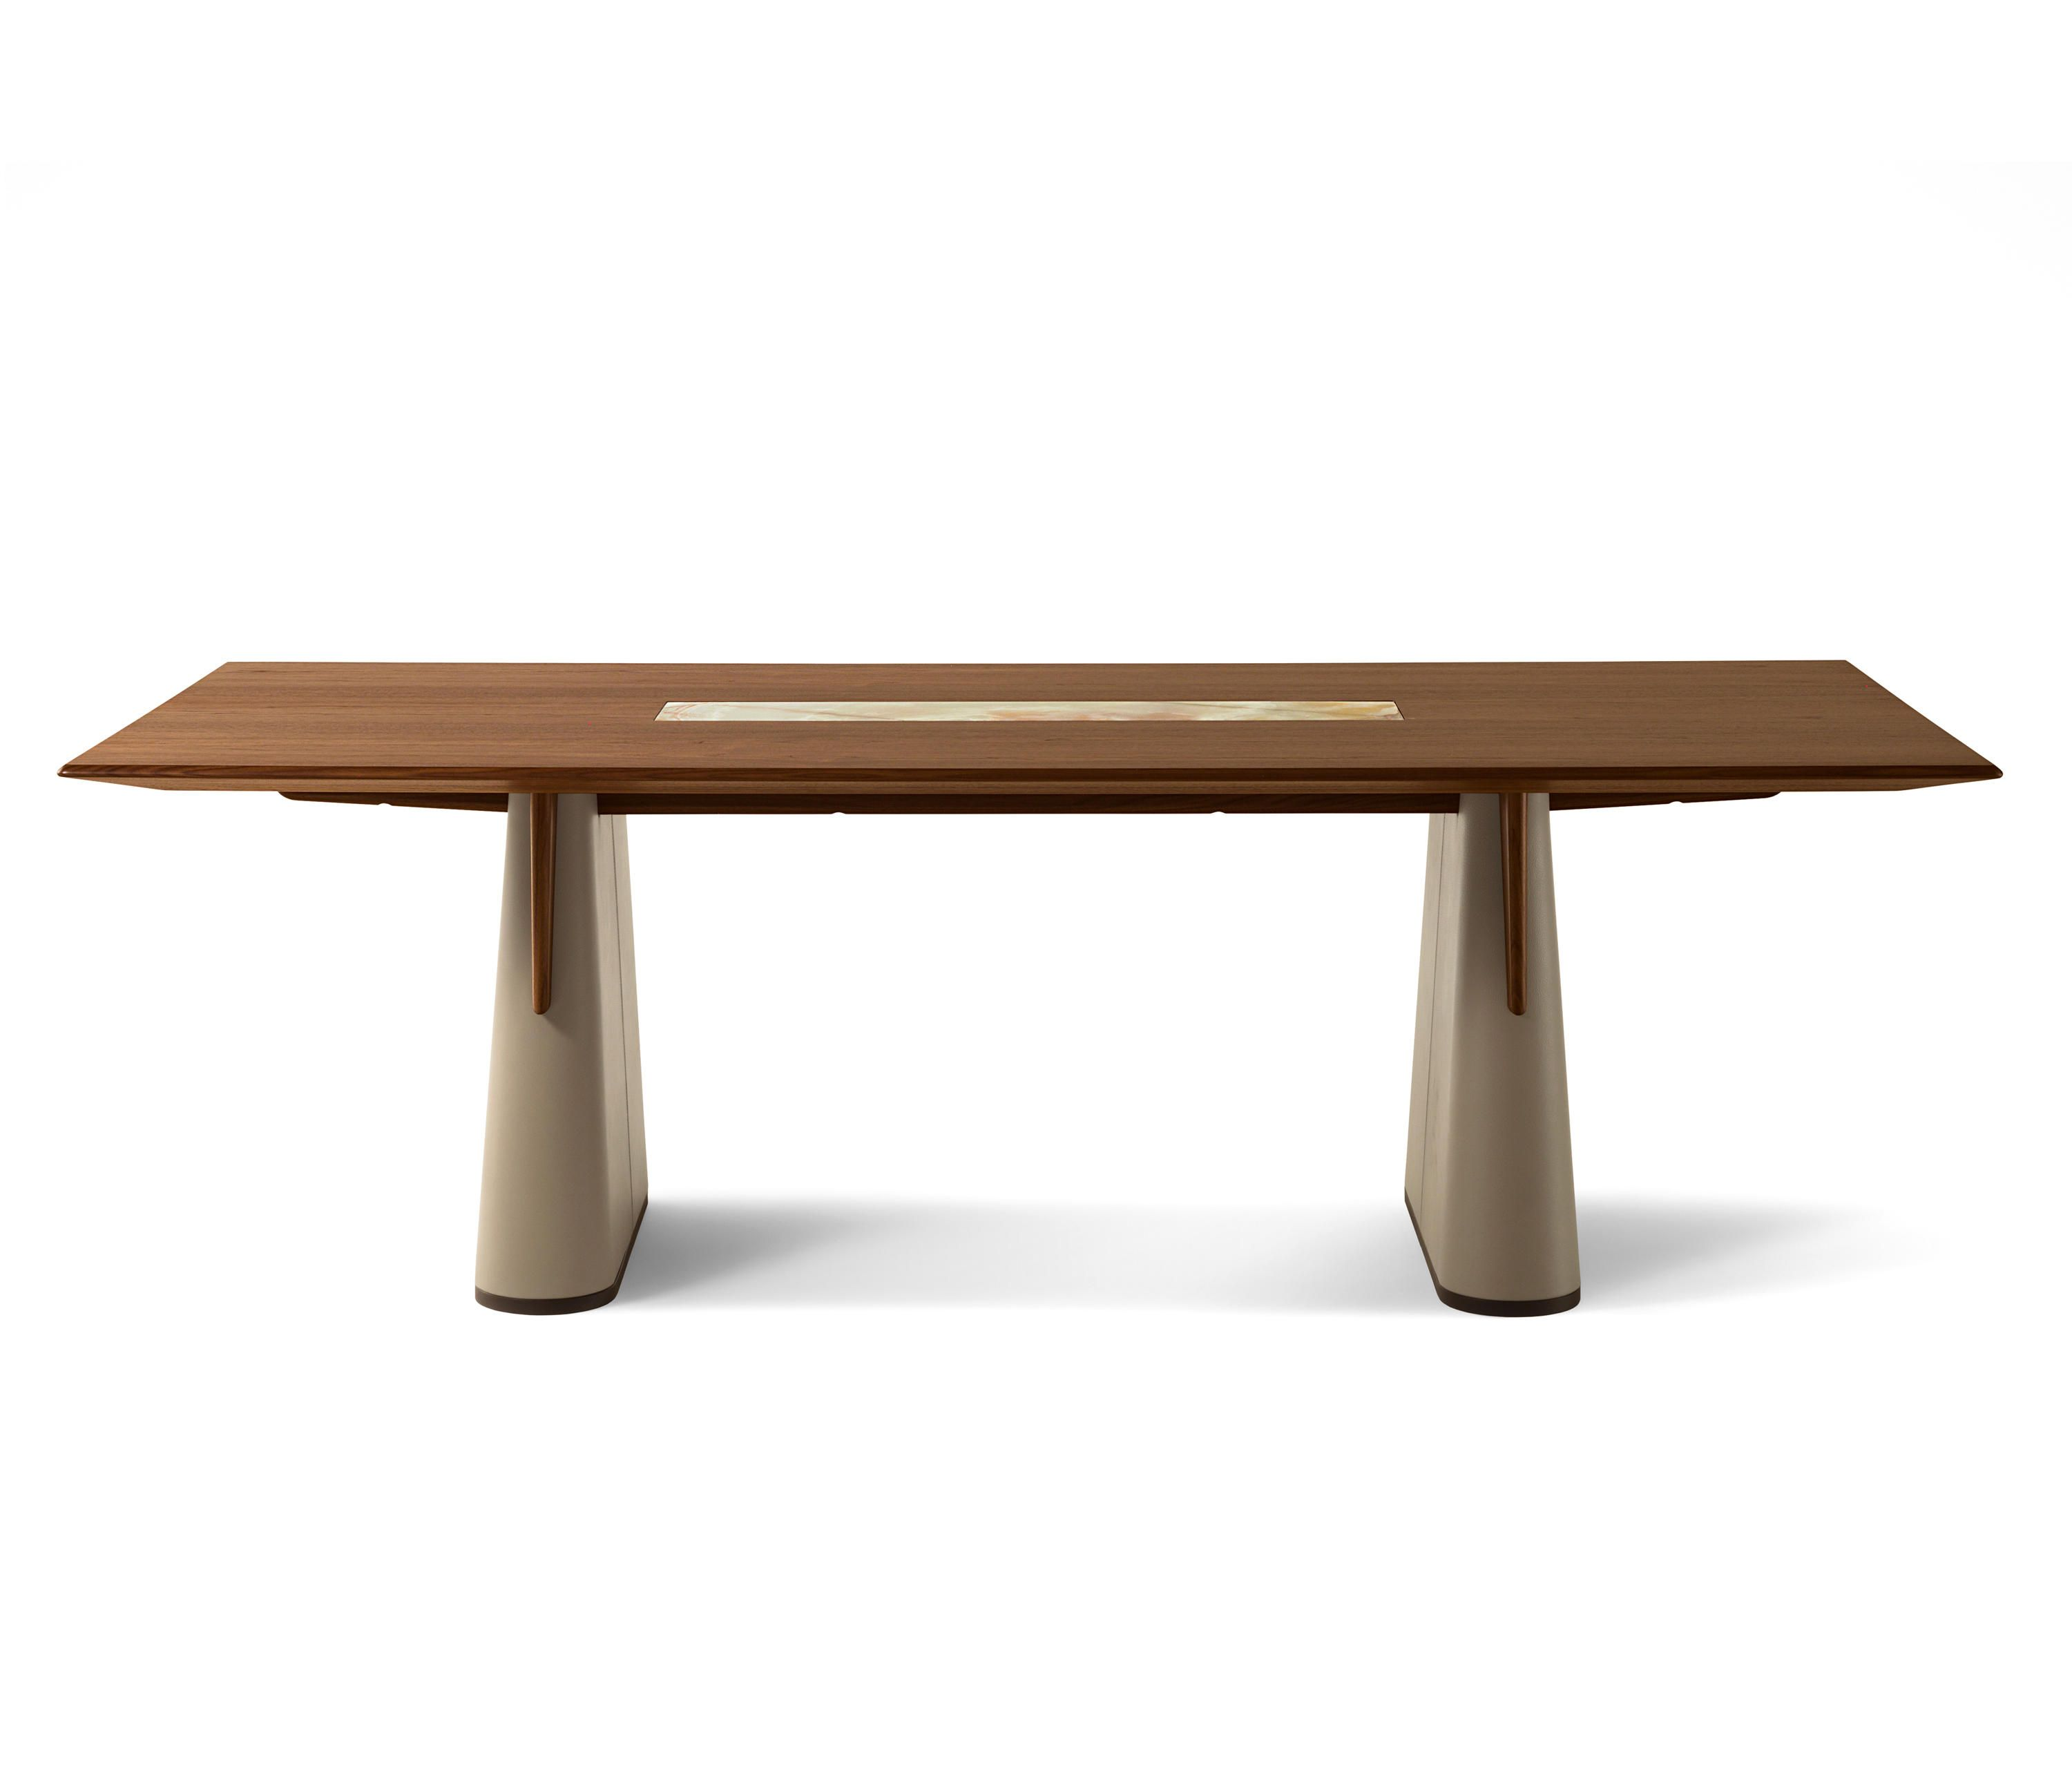 Fang Table Dining Tables From Giorgetti Architonic Furniture Dining Table Slab Dining Tables Dining Table